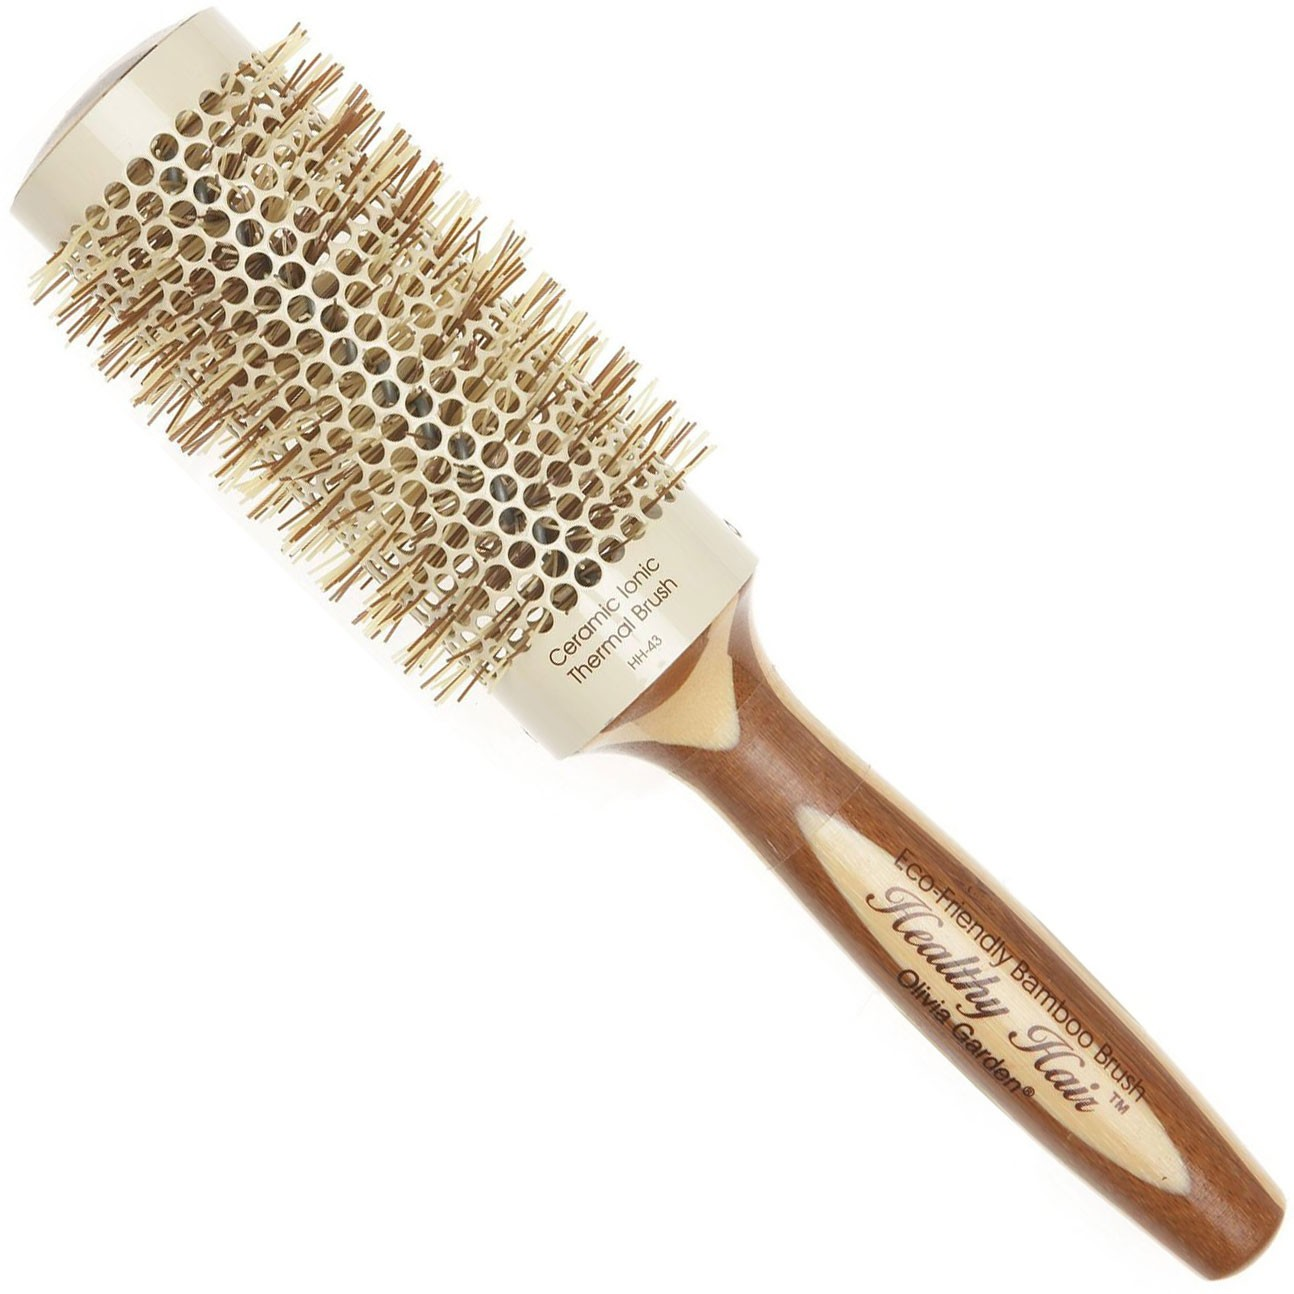 Olivia Garden Eco Friendly Bamboo Brush HH-43